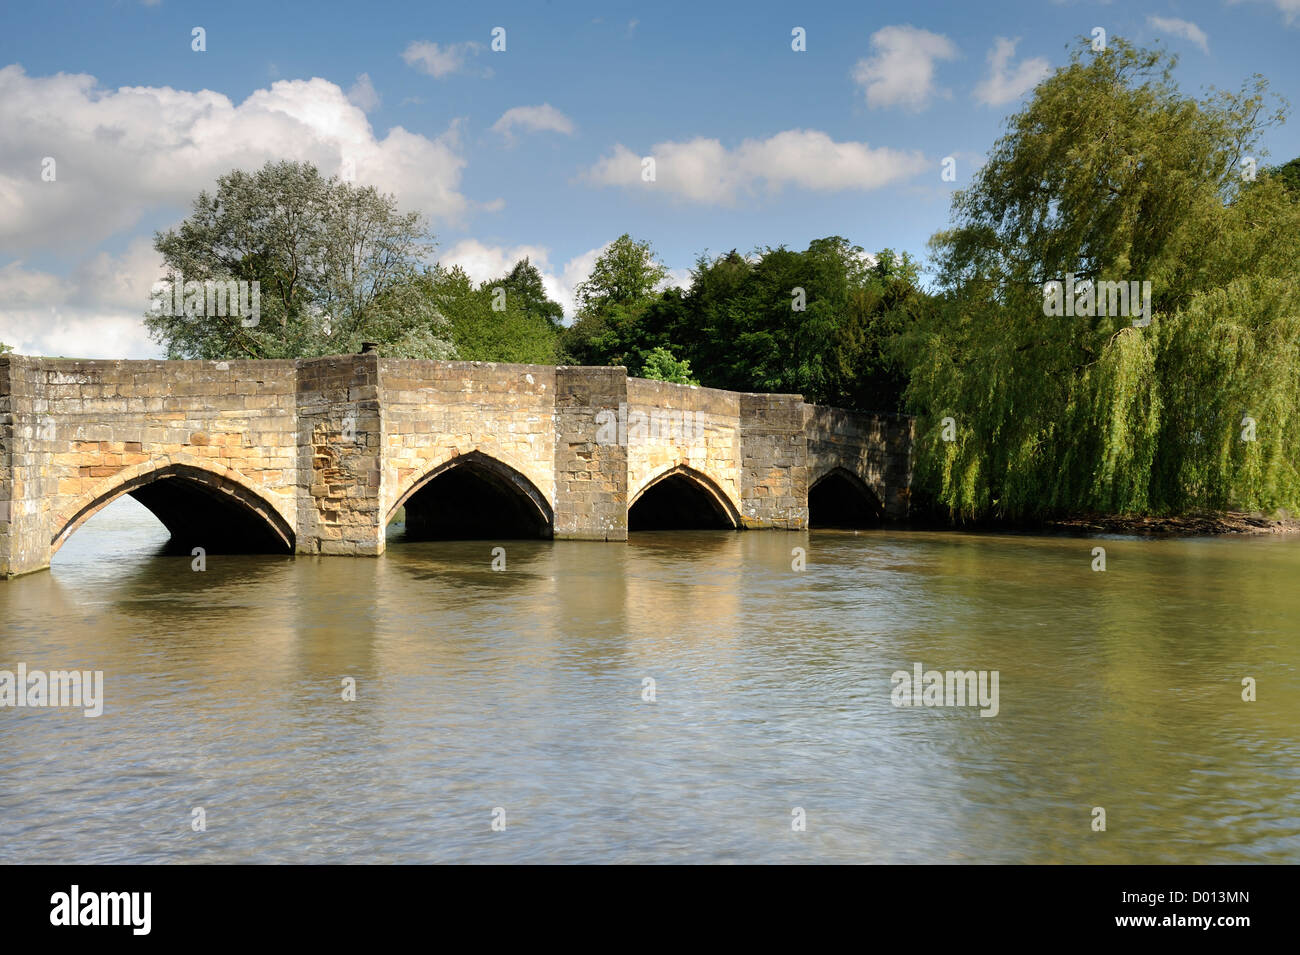 The old bridge that crosses the river Wye in Bakewell, Derbyshire, UK. - Stock Image